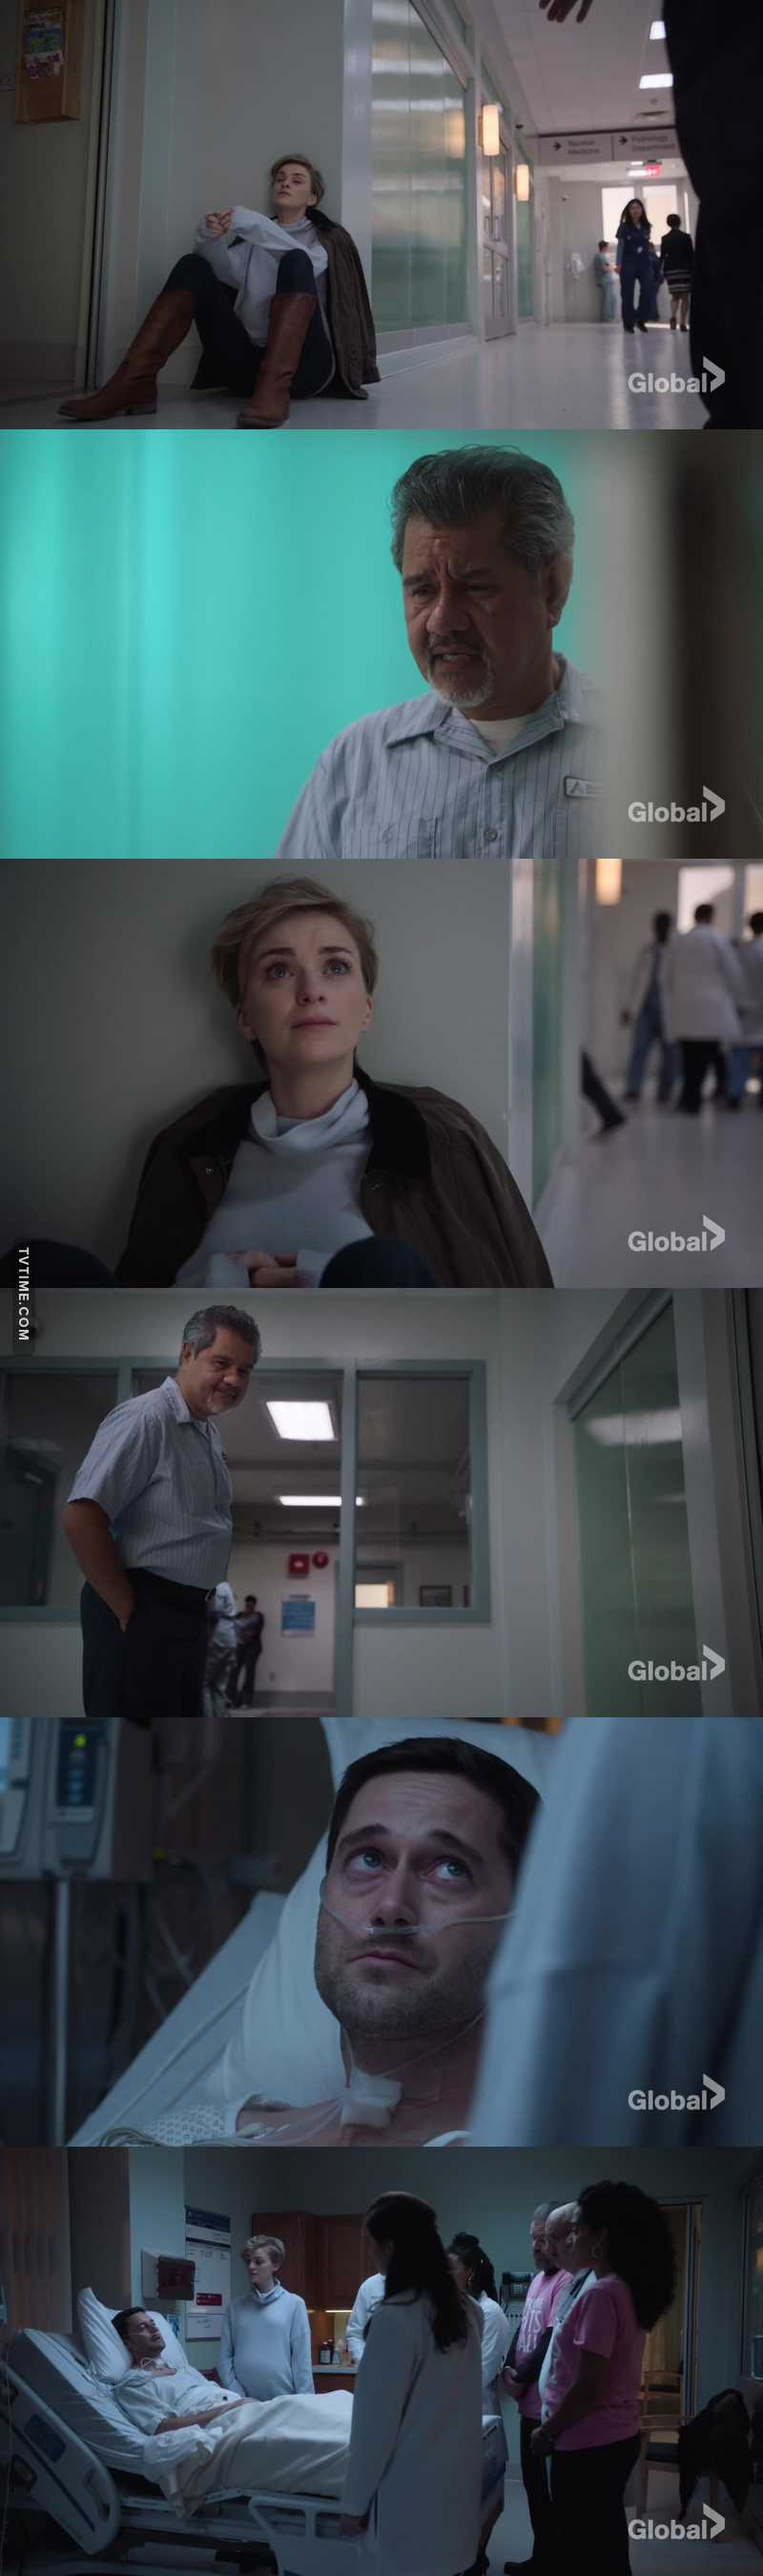 Even the janitors are rooting for Max! Max has affected all of their lives! Every single person he has come in contact with. If that is not enough to keep him around, I don't know what is!